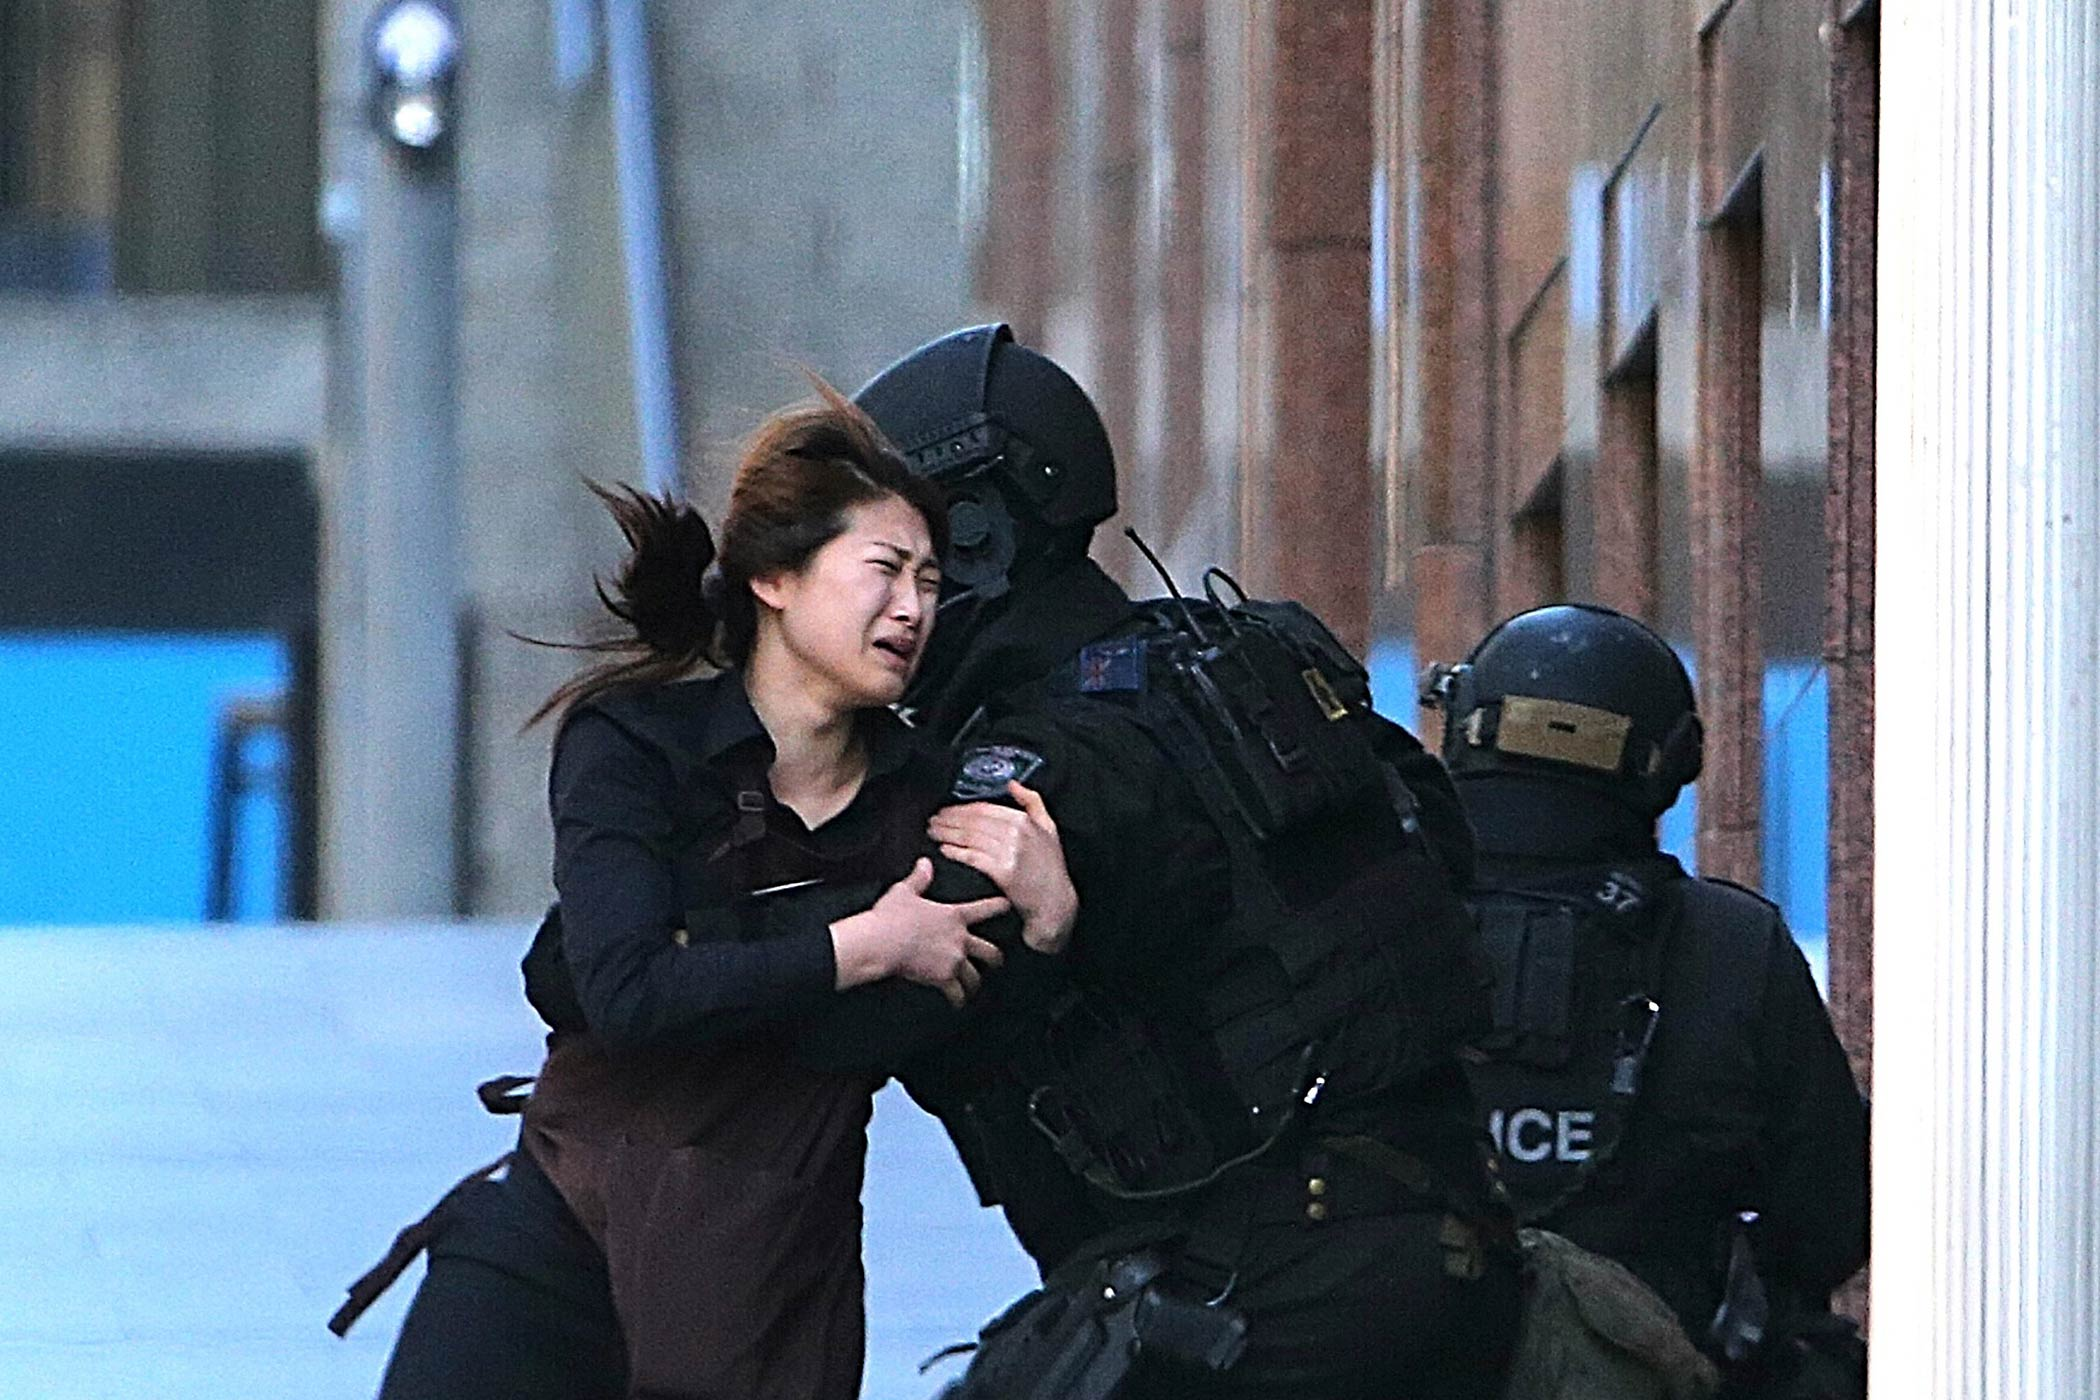 A hostage runs to tactical response police officers for safety after she escaped from a cafe under siege at Martin Place in Sydney, Australia, on Dec. 15, 2014.